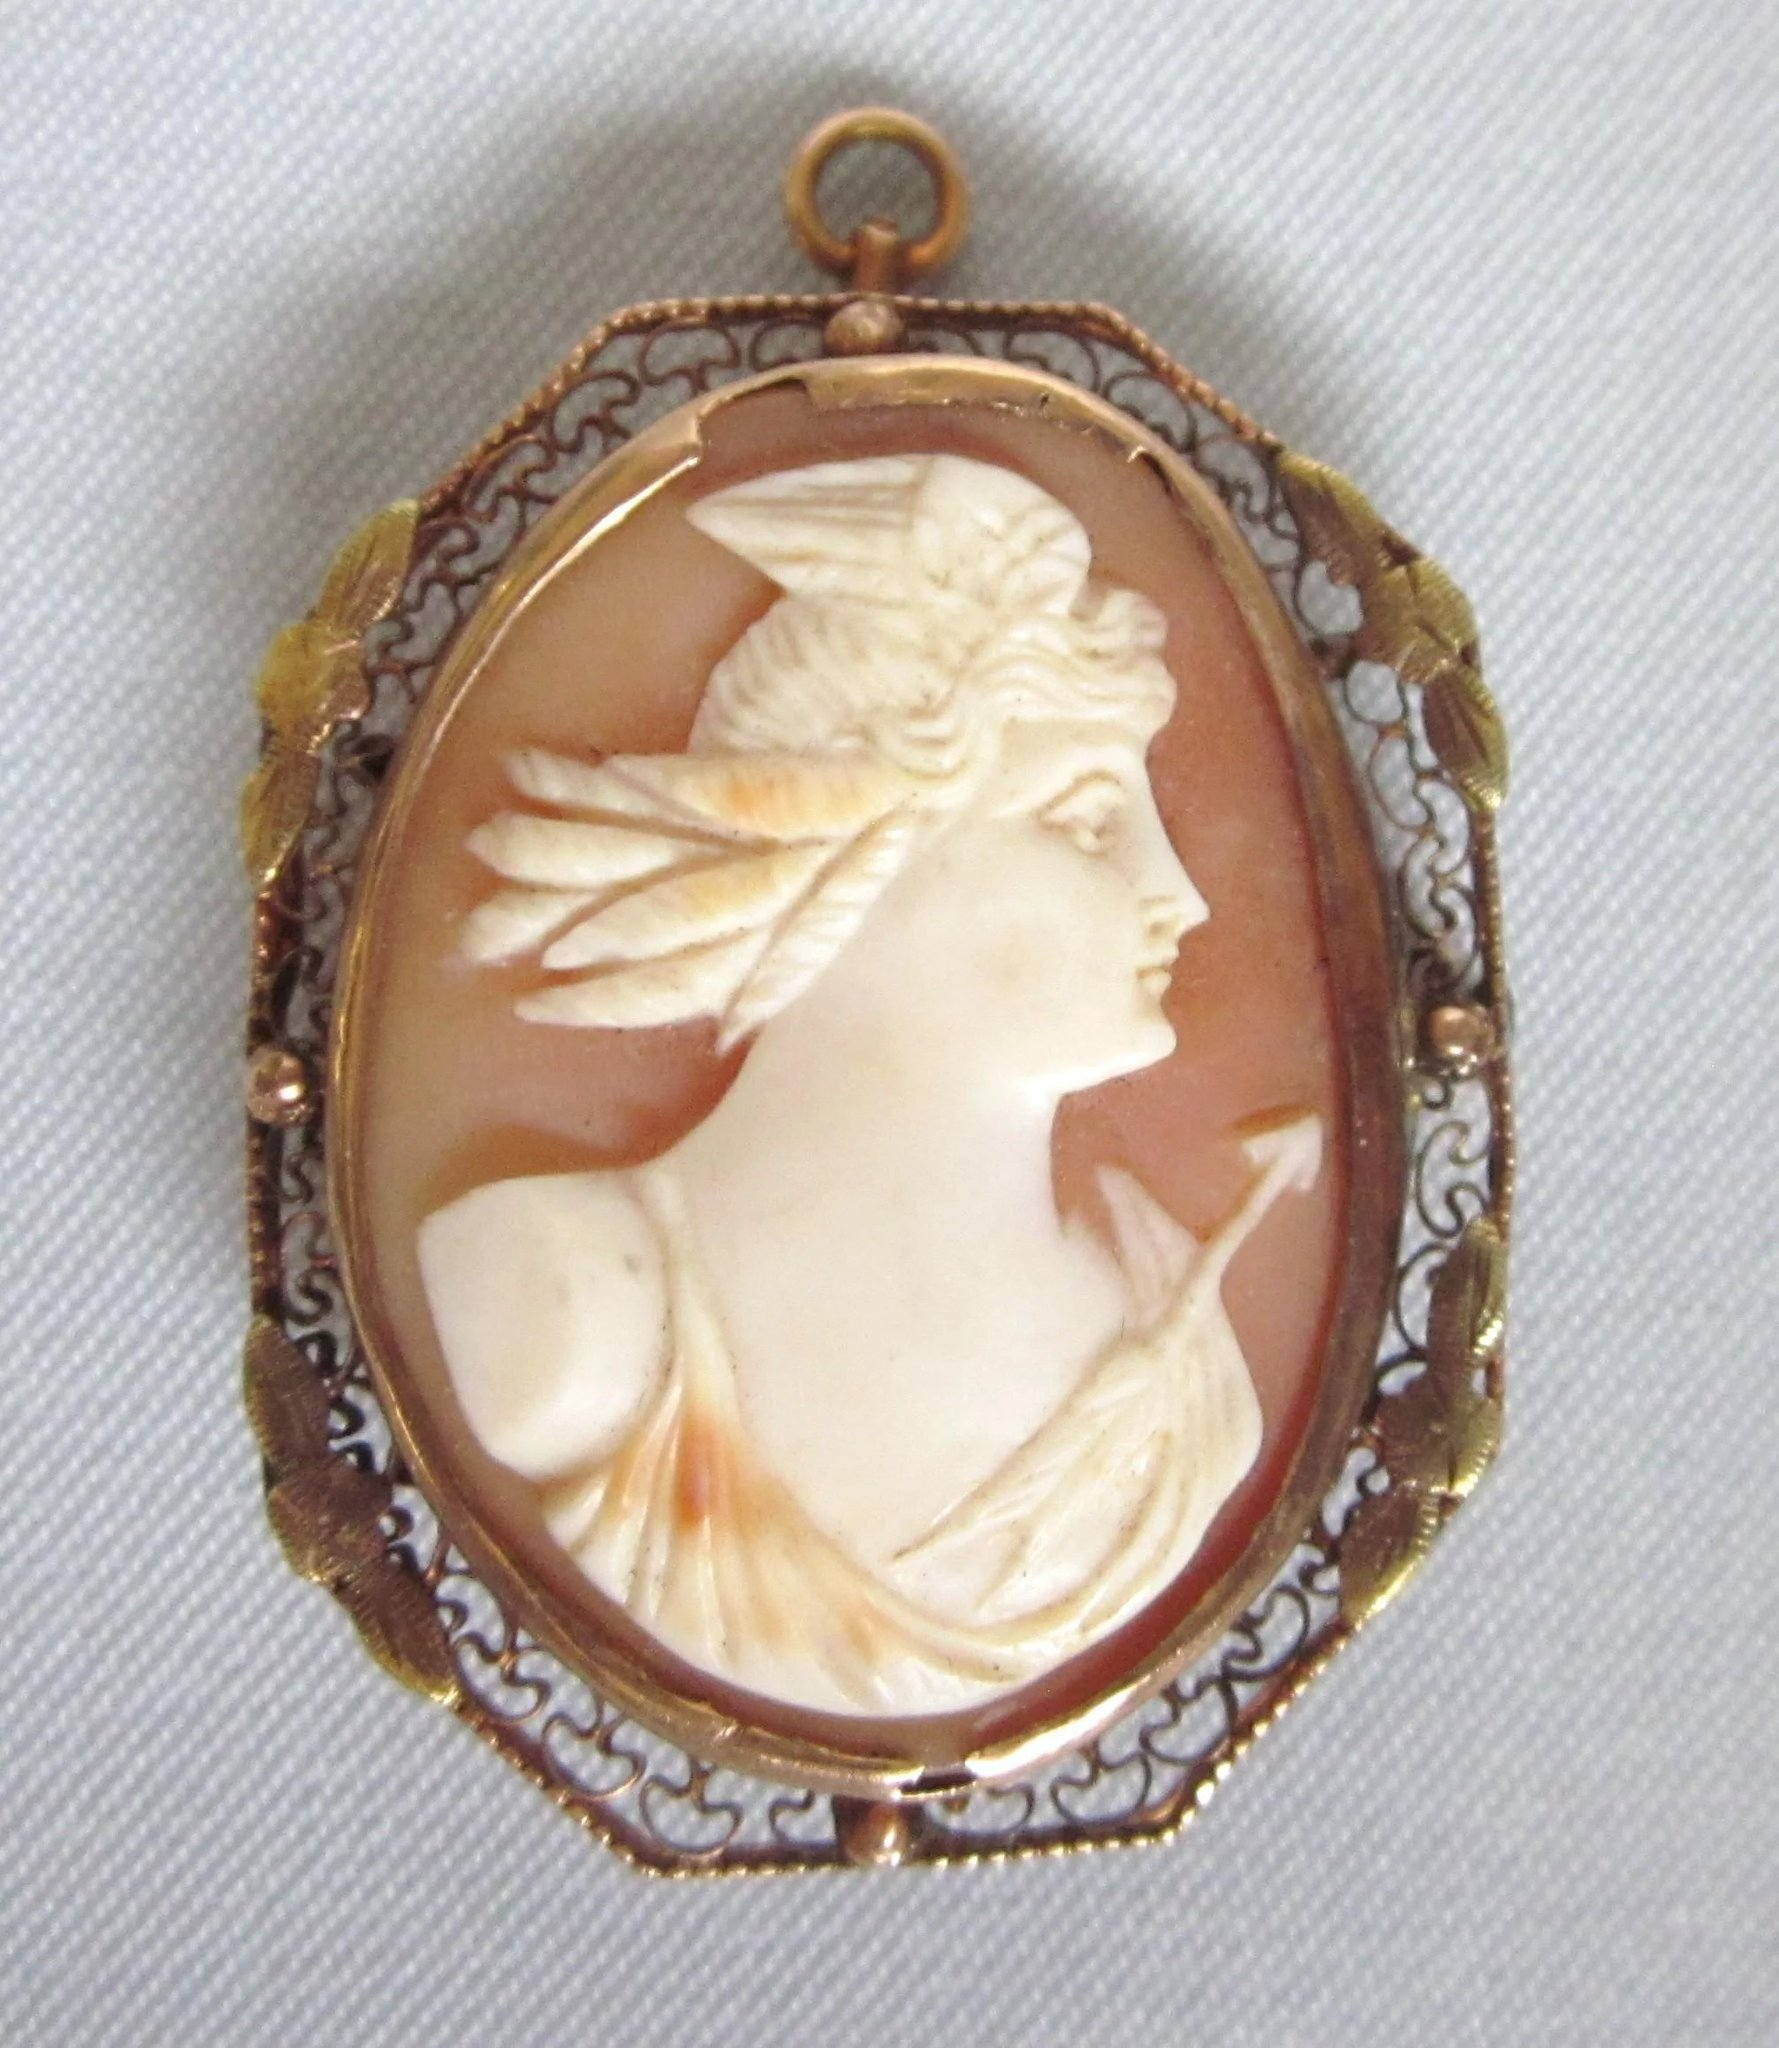 da1ef6f175e2a Antique 10K Gold Cameo of Nike Diana Huntress Goddess, Brooch Pendant